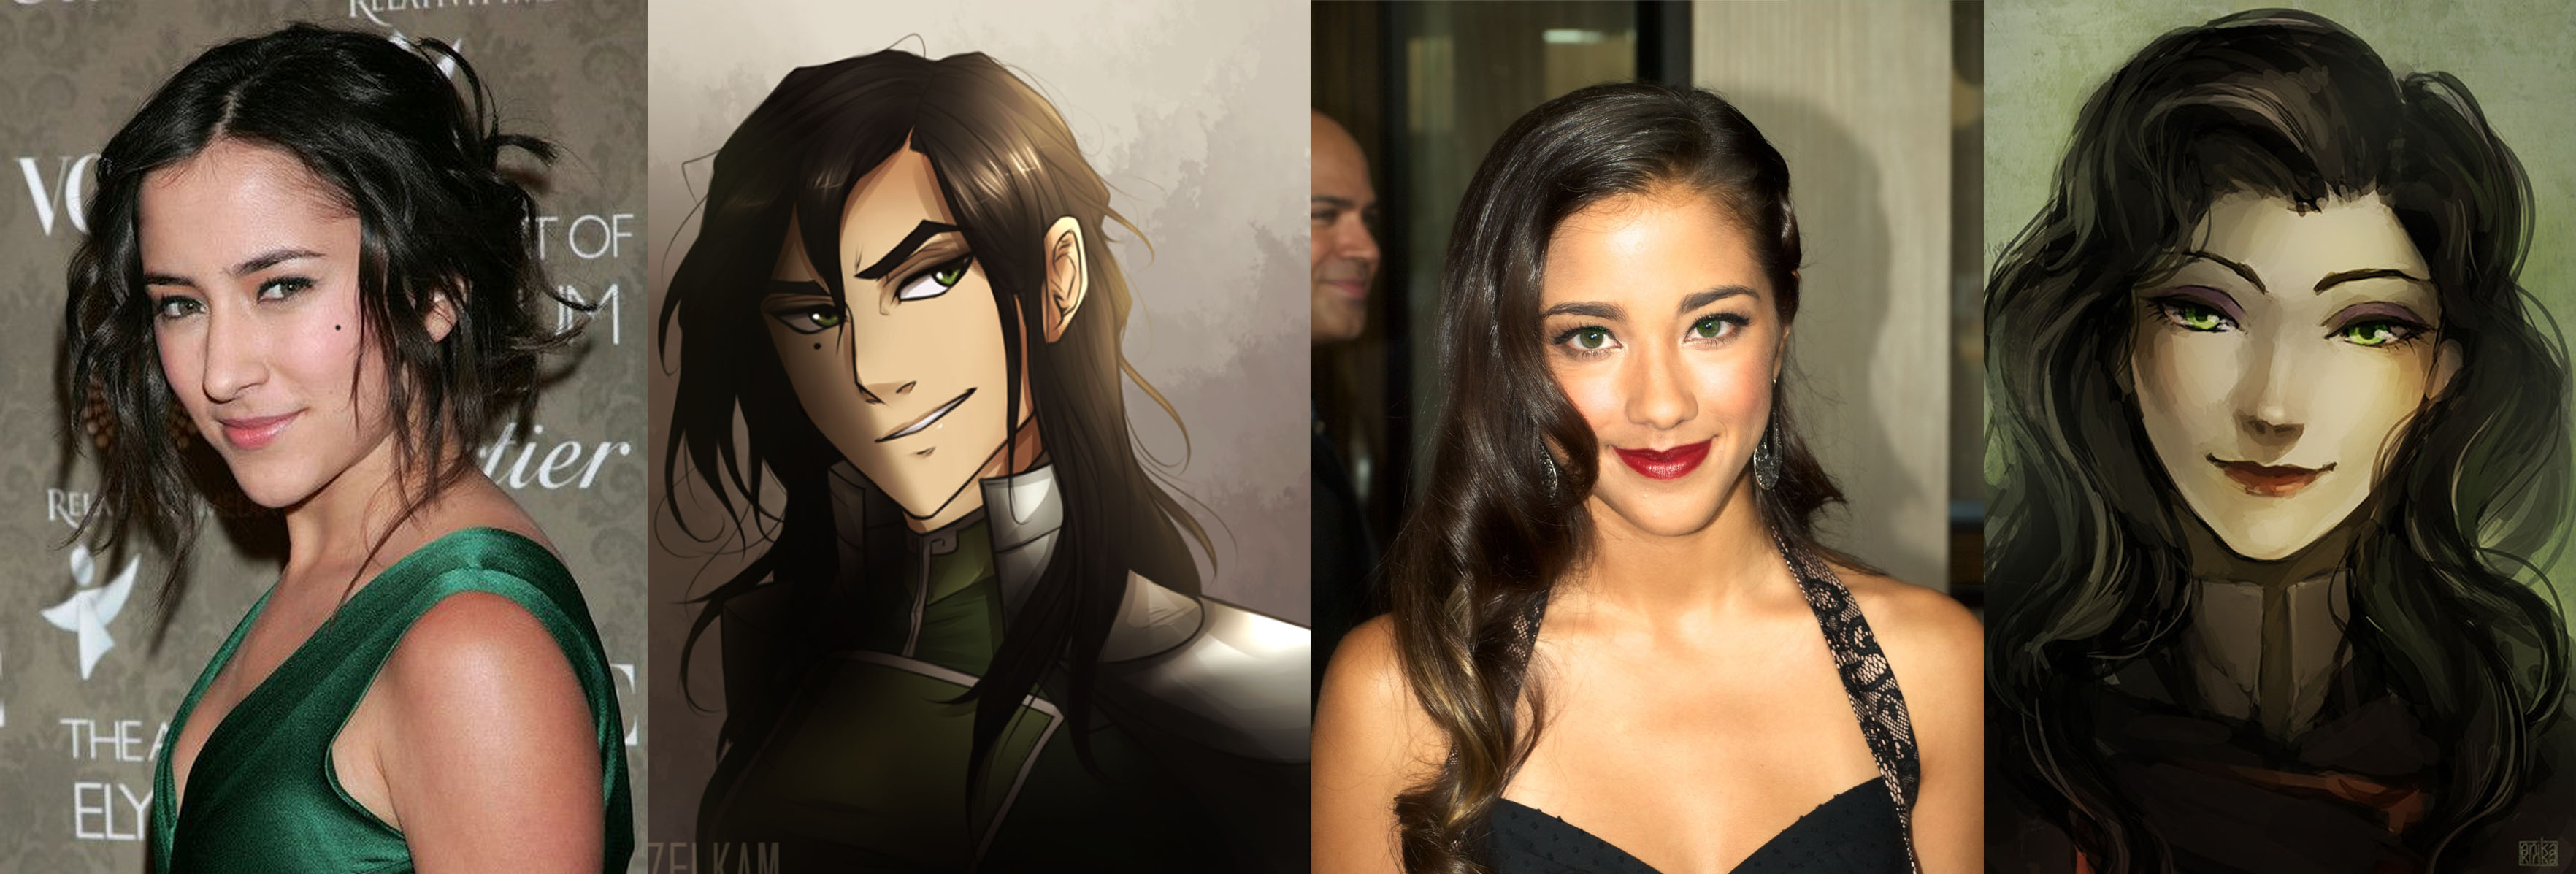 Voice Actress Resemblance Avatar The Last Airbender The Legend